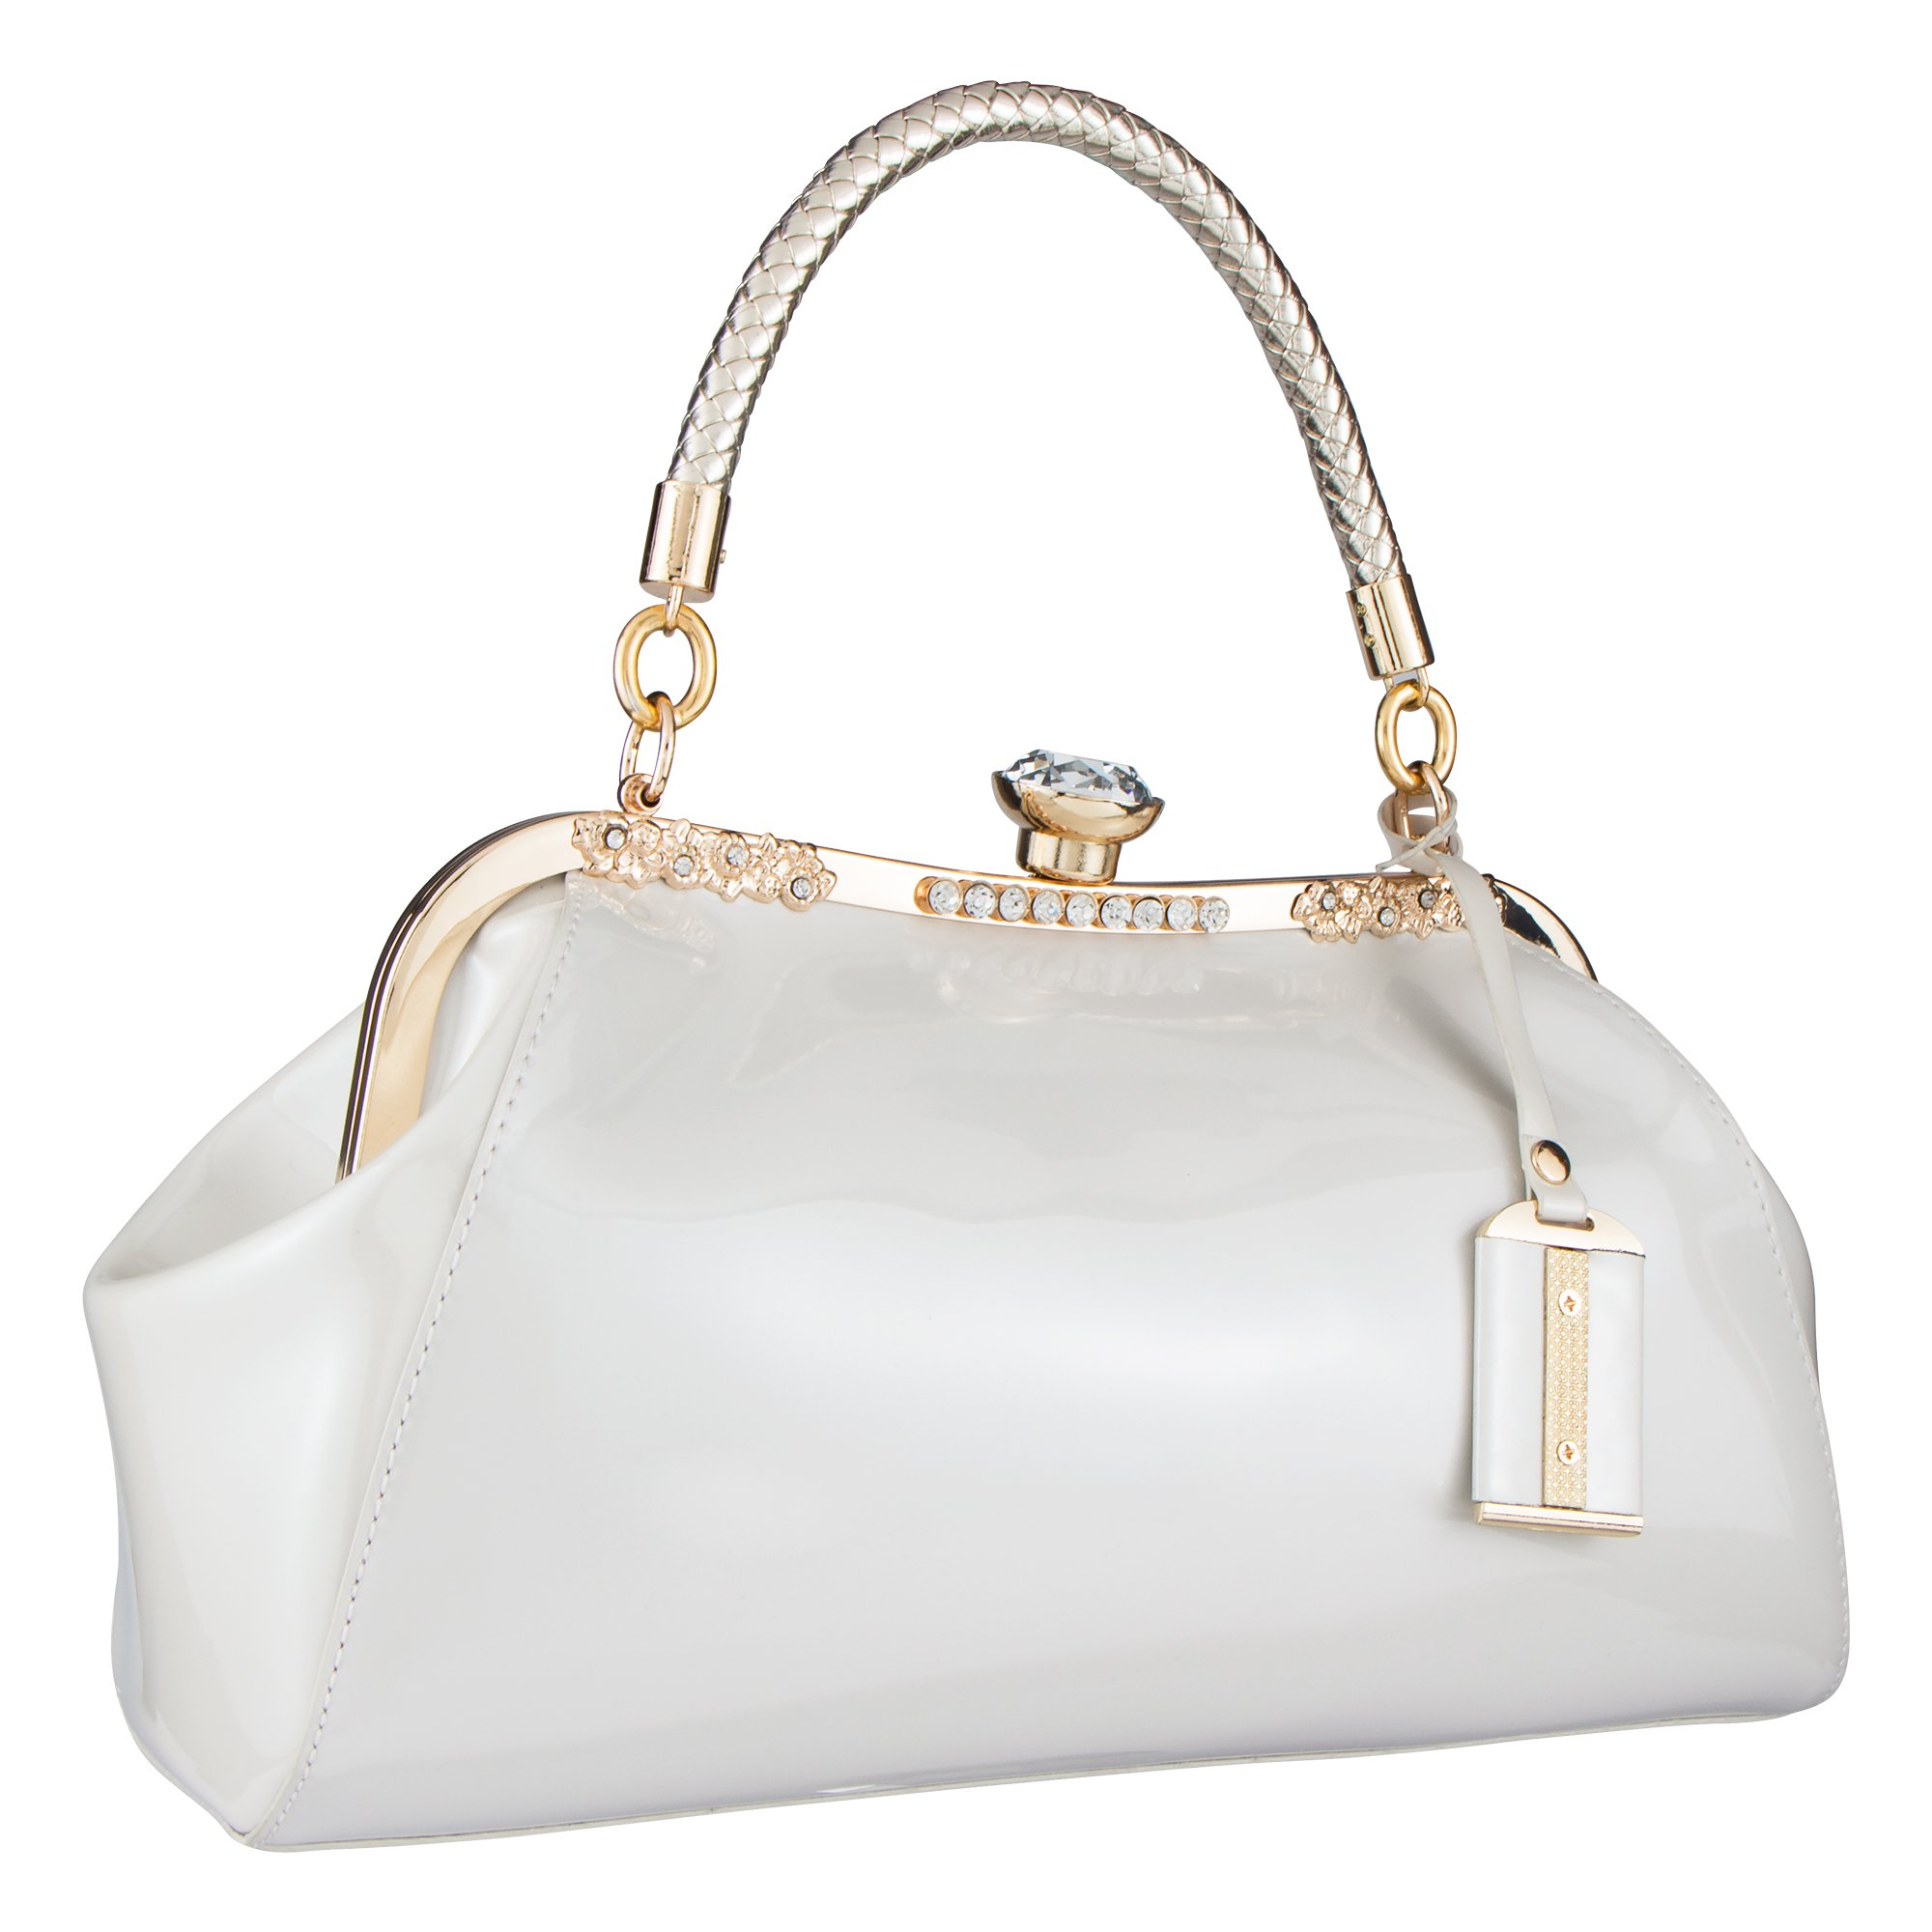 Bagood Women's Patent Leather Glossy Shell Handbag Clutches Shoulder Evening Bags for Party White